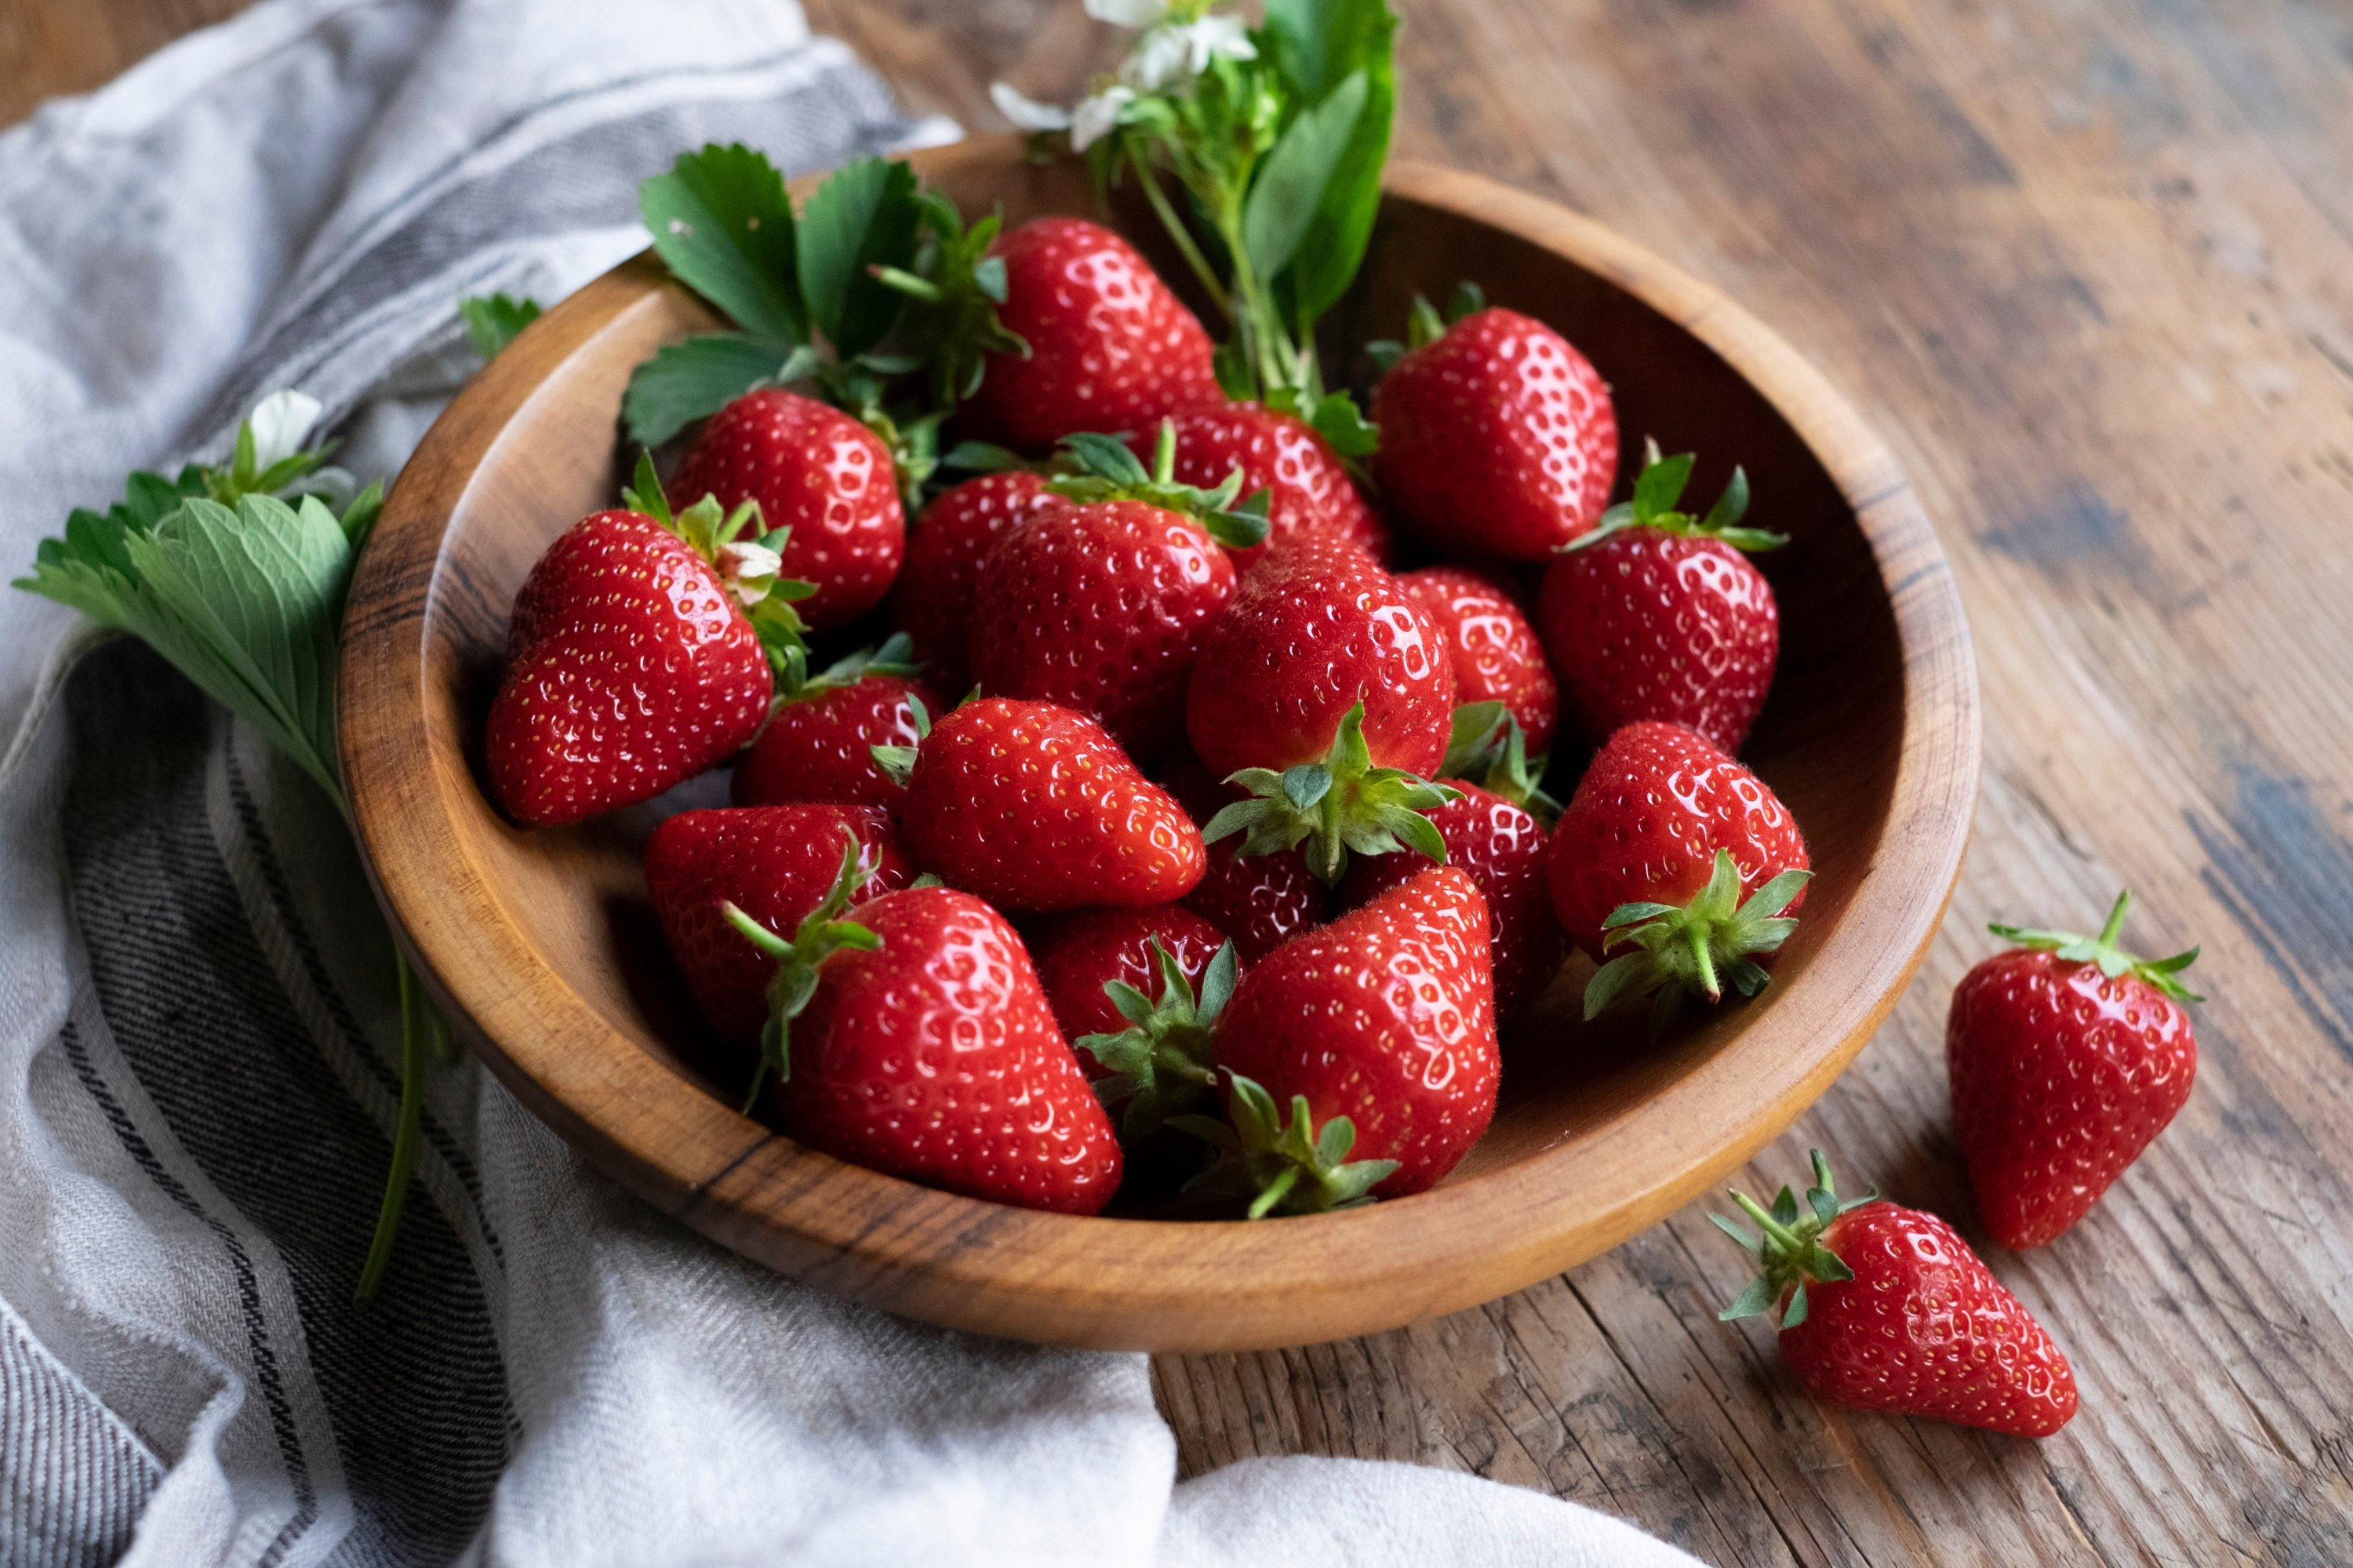 Fresh strawberries offer a wide variety of health benefits. (Shutterstock Photo)